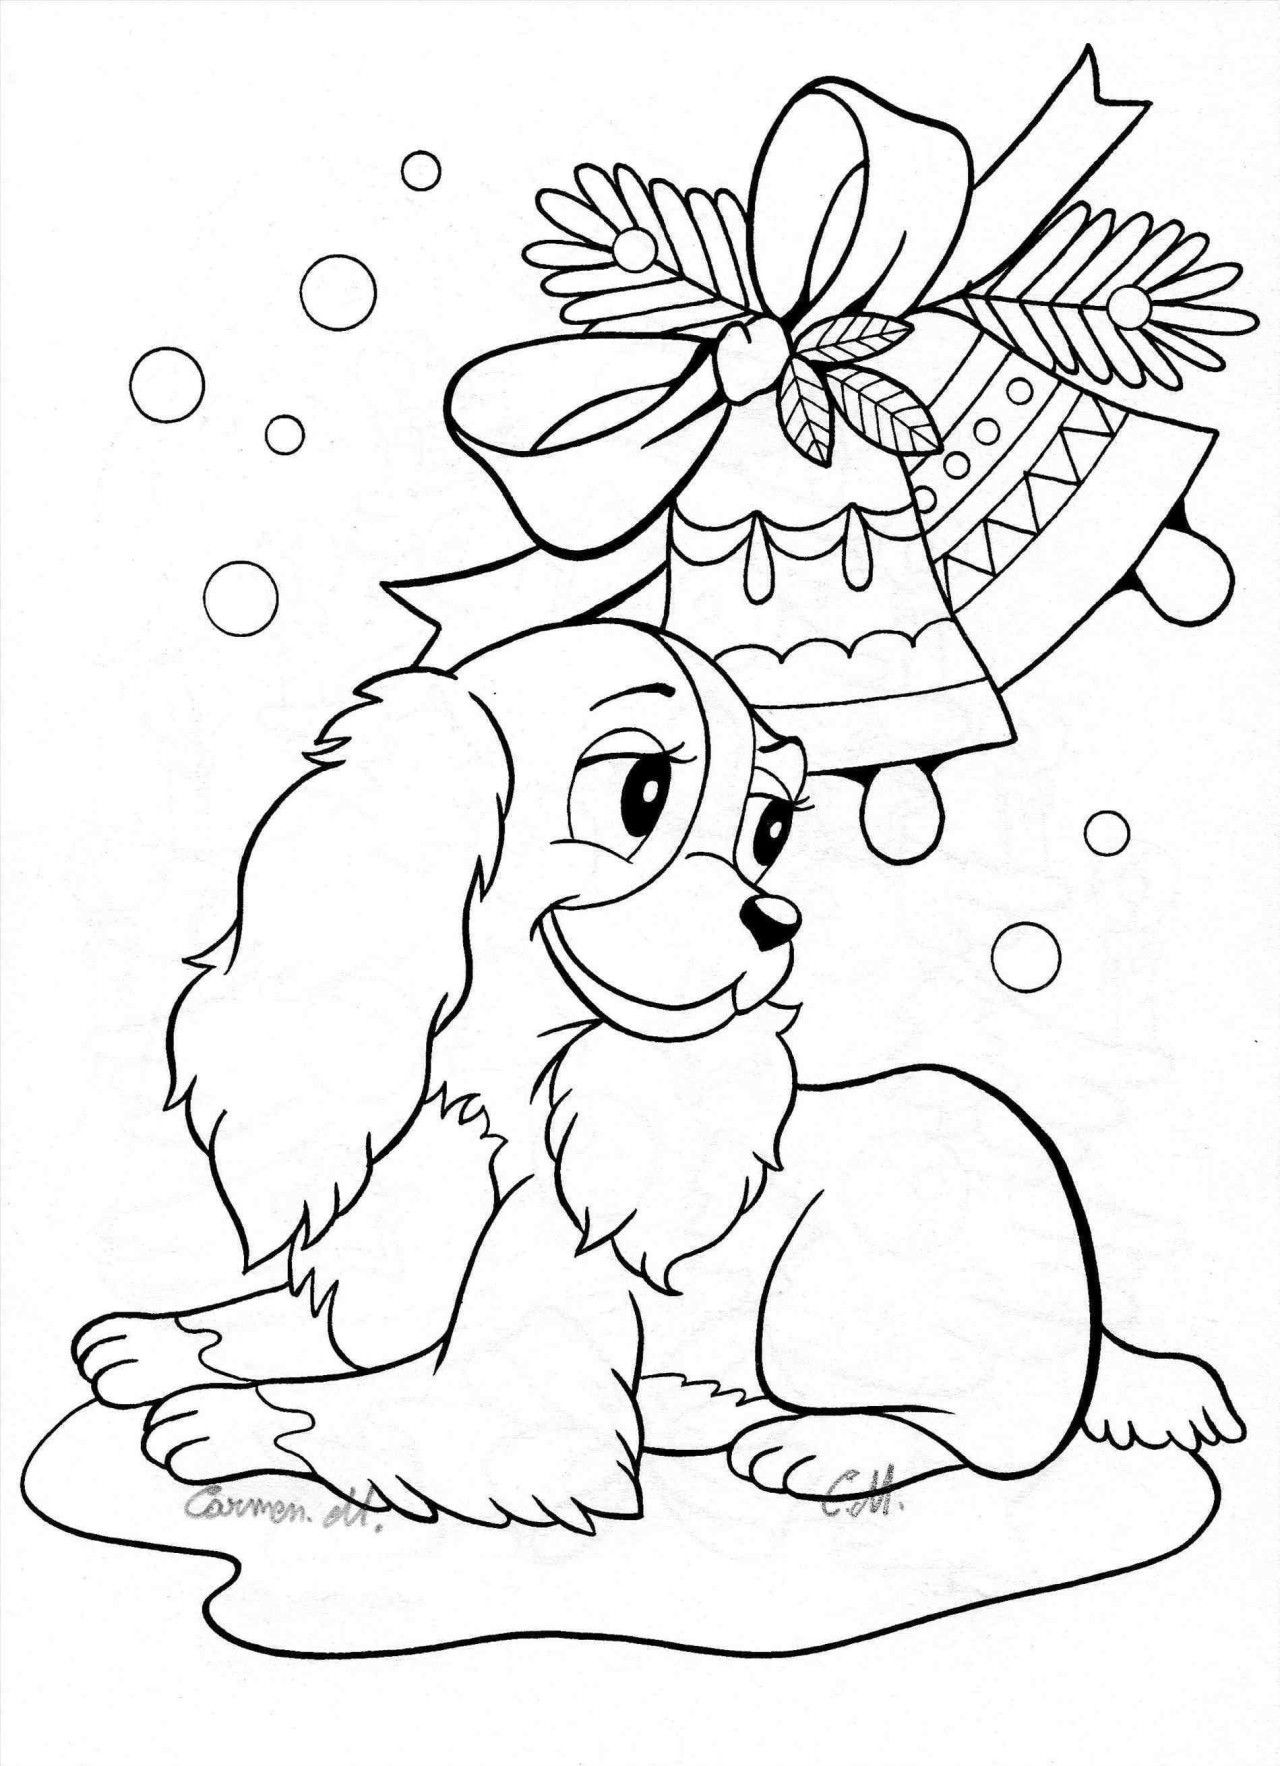 Printable Christmas Colouring Pages The Organised Housewife Printable Christmas Coloring Pages Disney Coloring Pages Puppy Coloring Pages